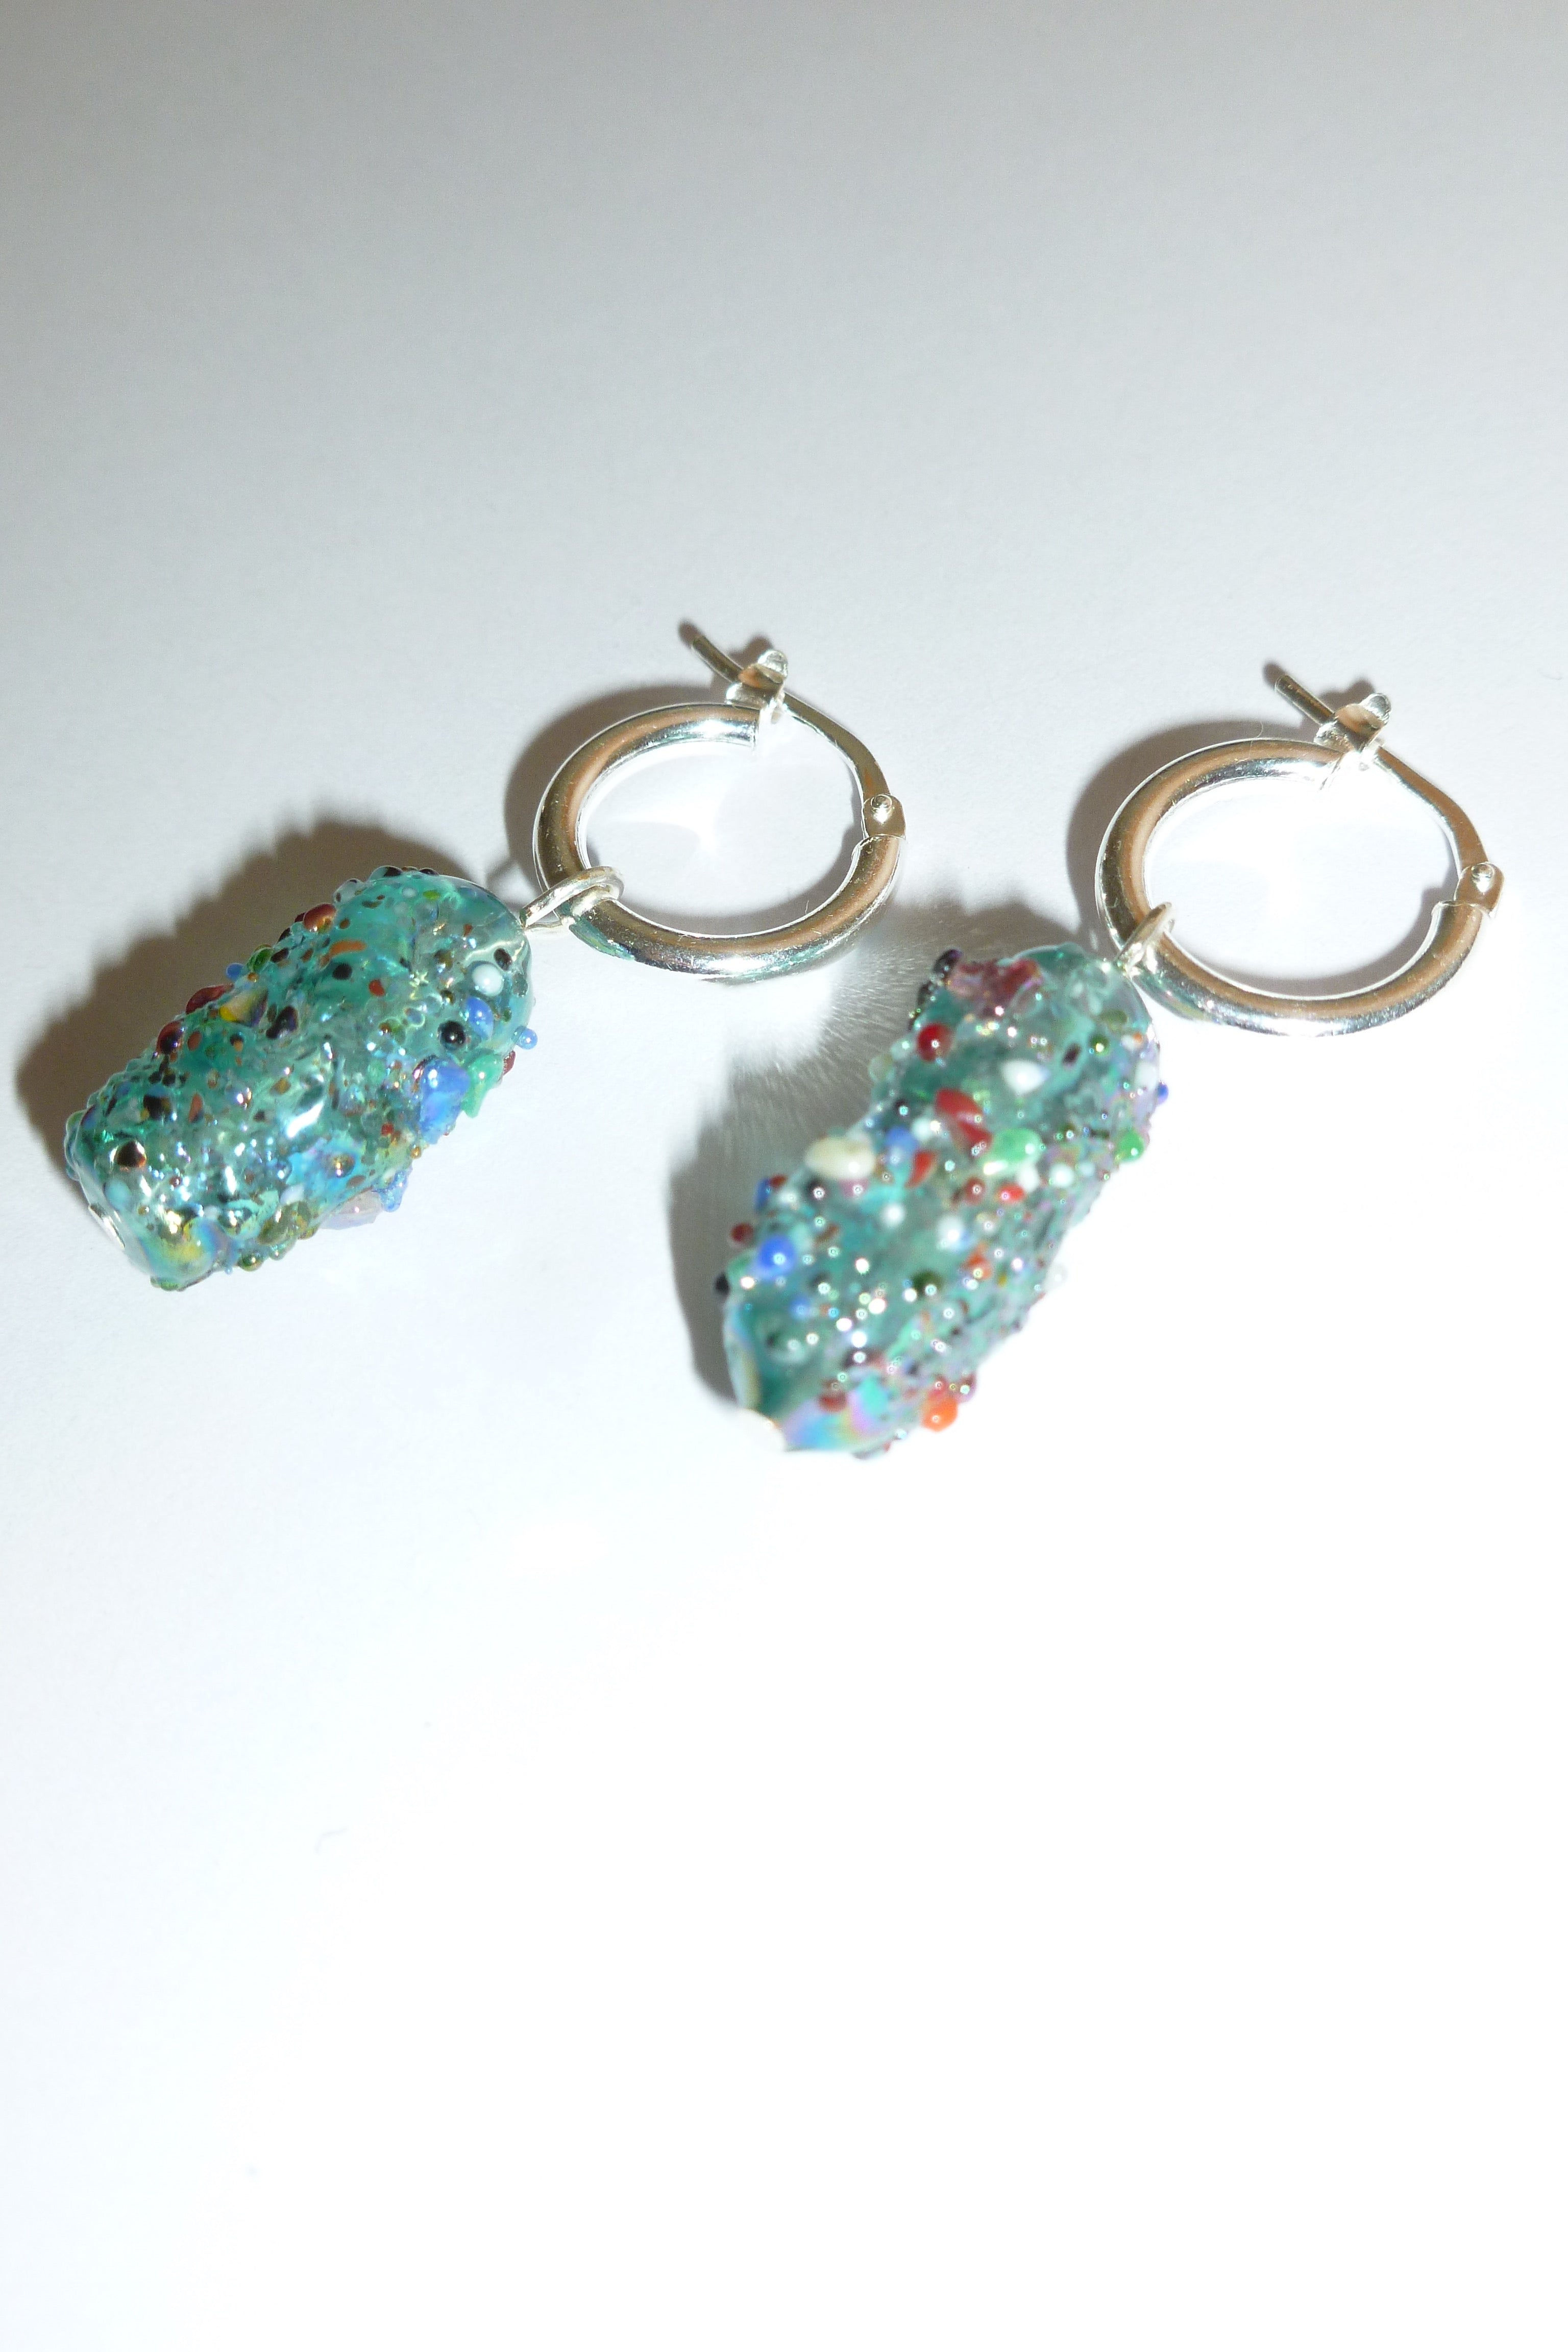 Special créoles earrings - Blue sprinkle - One of a kind